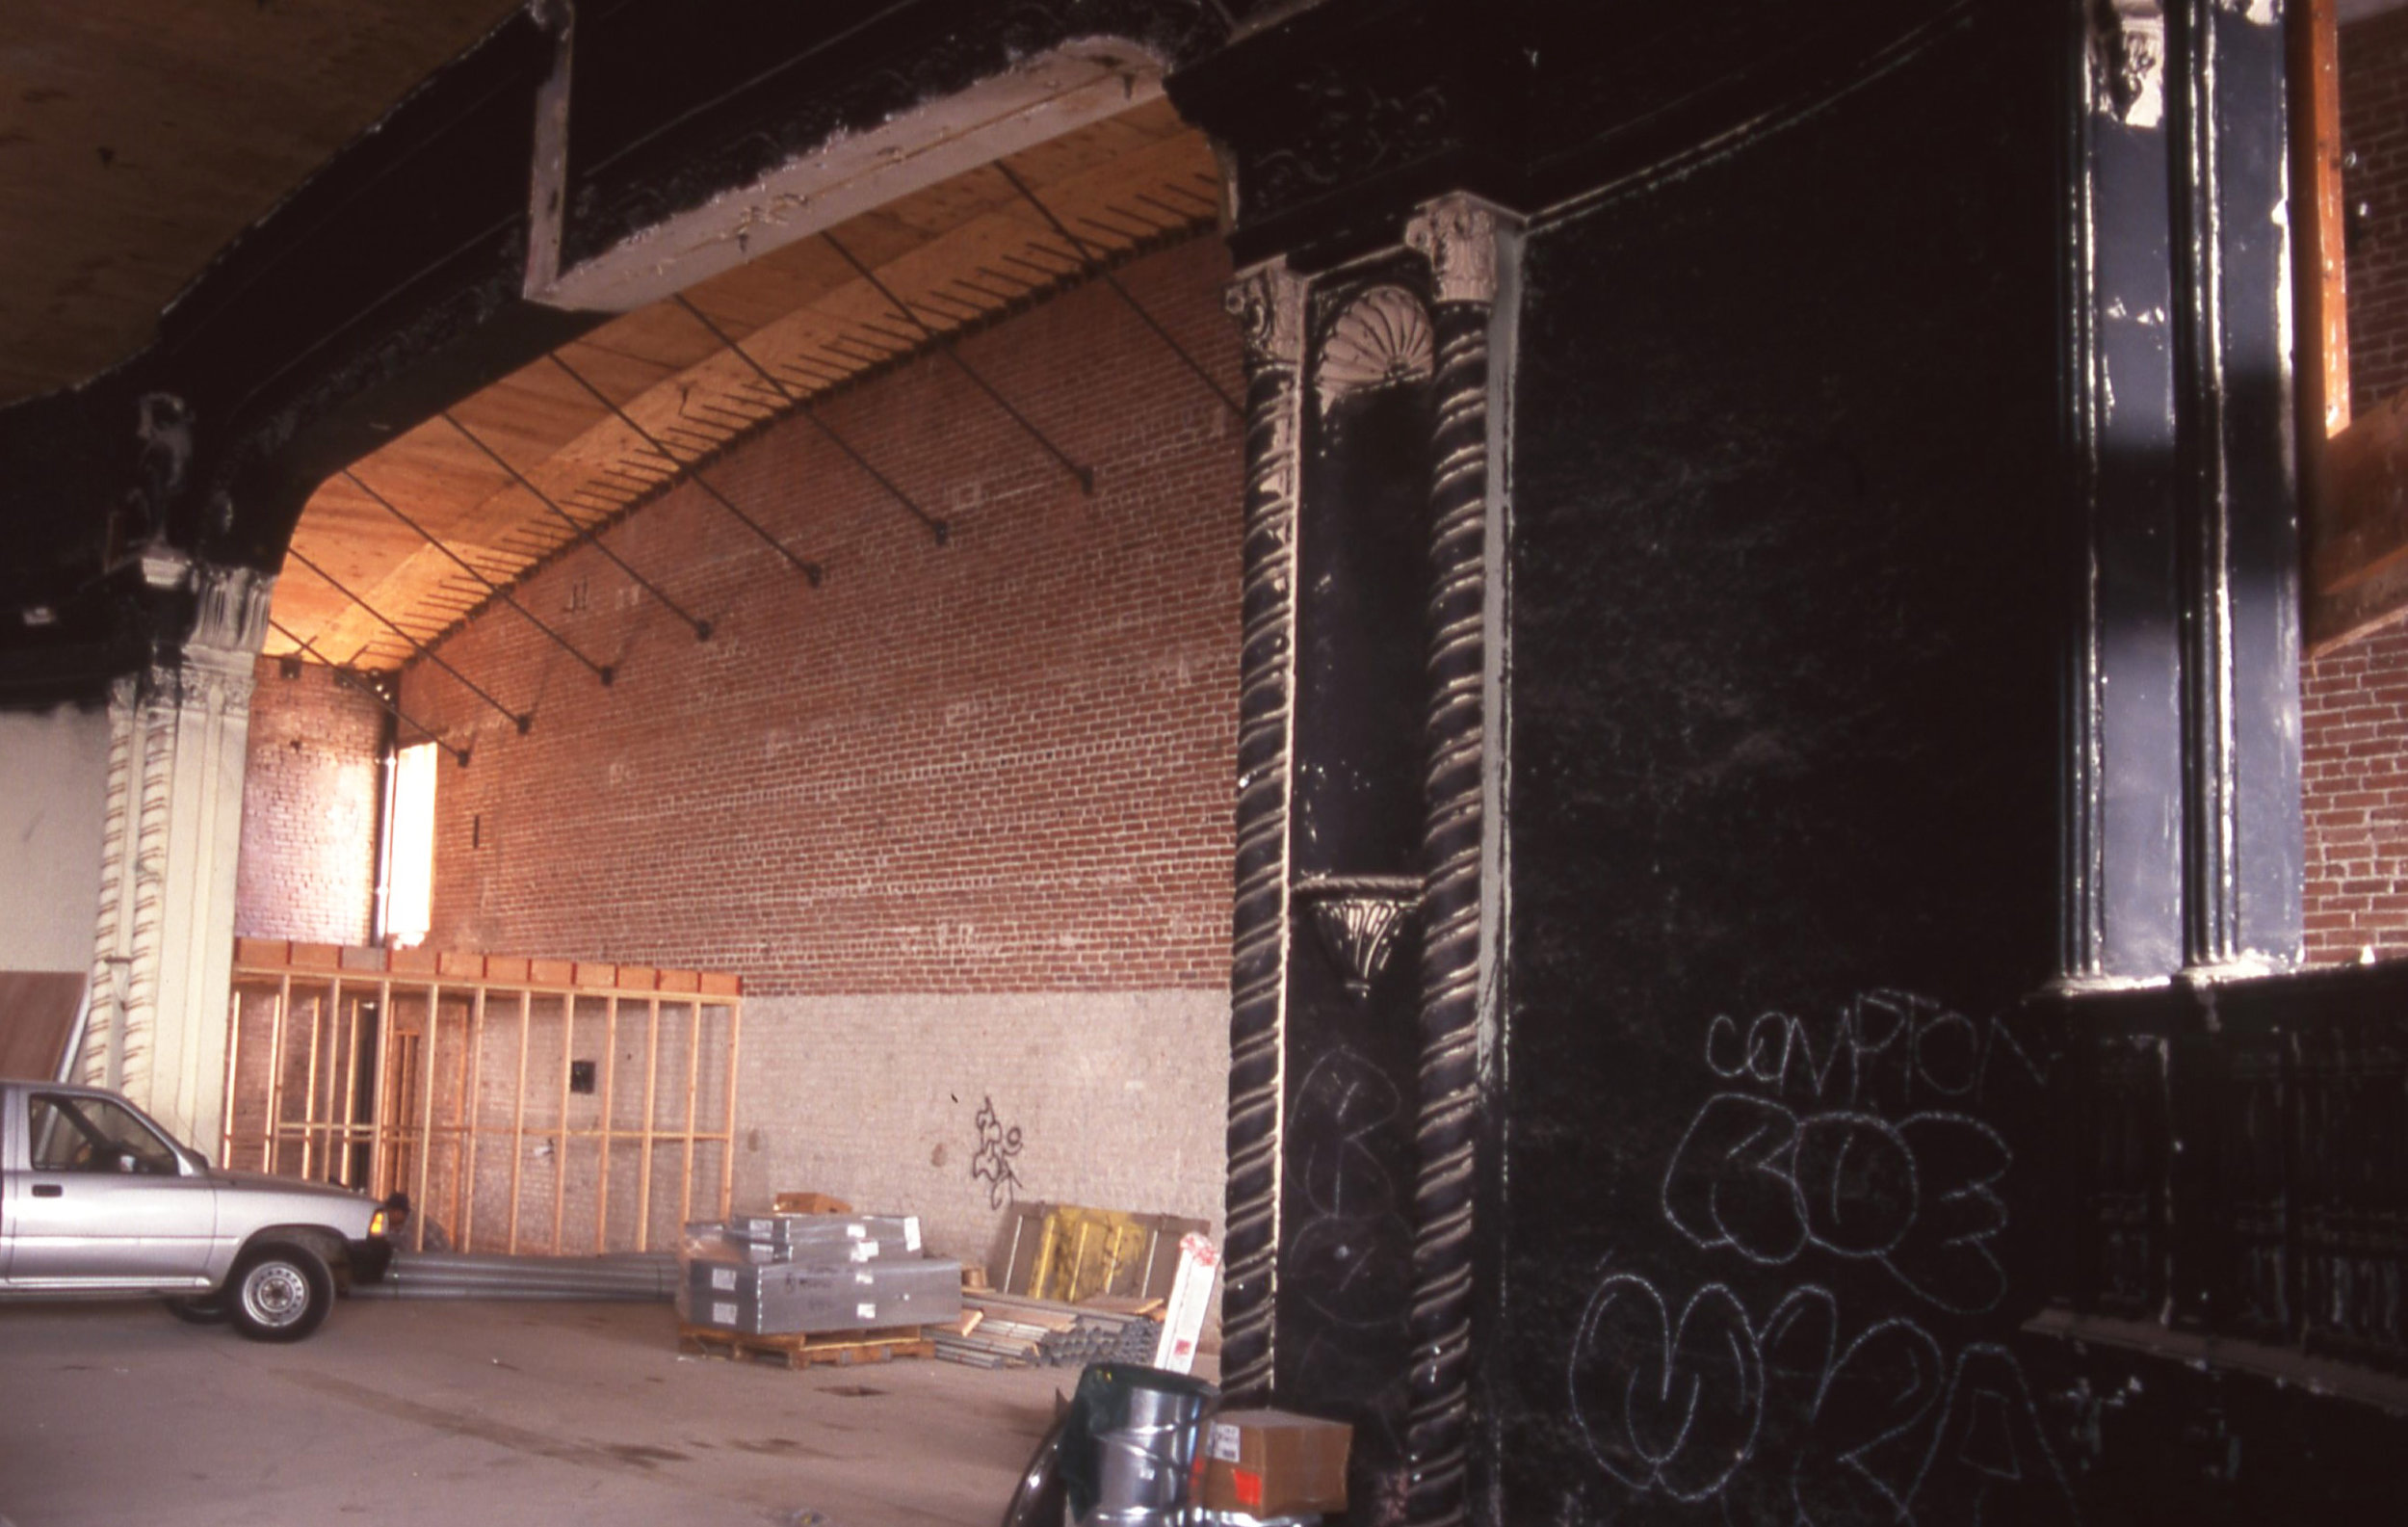 - View of the proscenium arch during the construction / renovation phase, The arch was painted black when the theater was converted into a cinema.